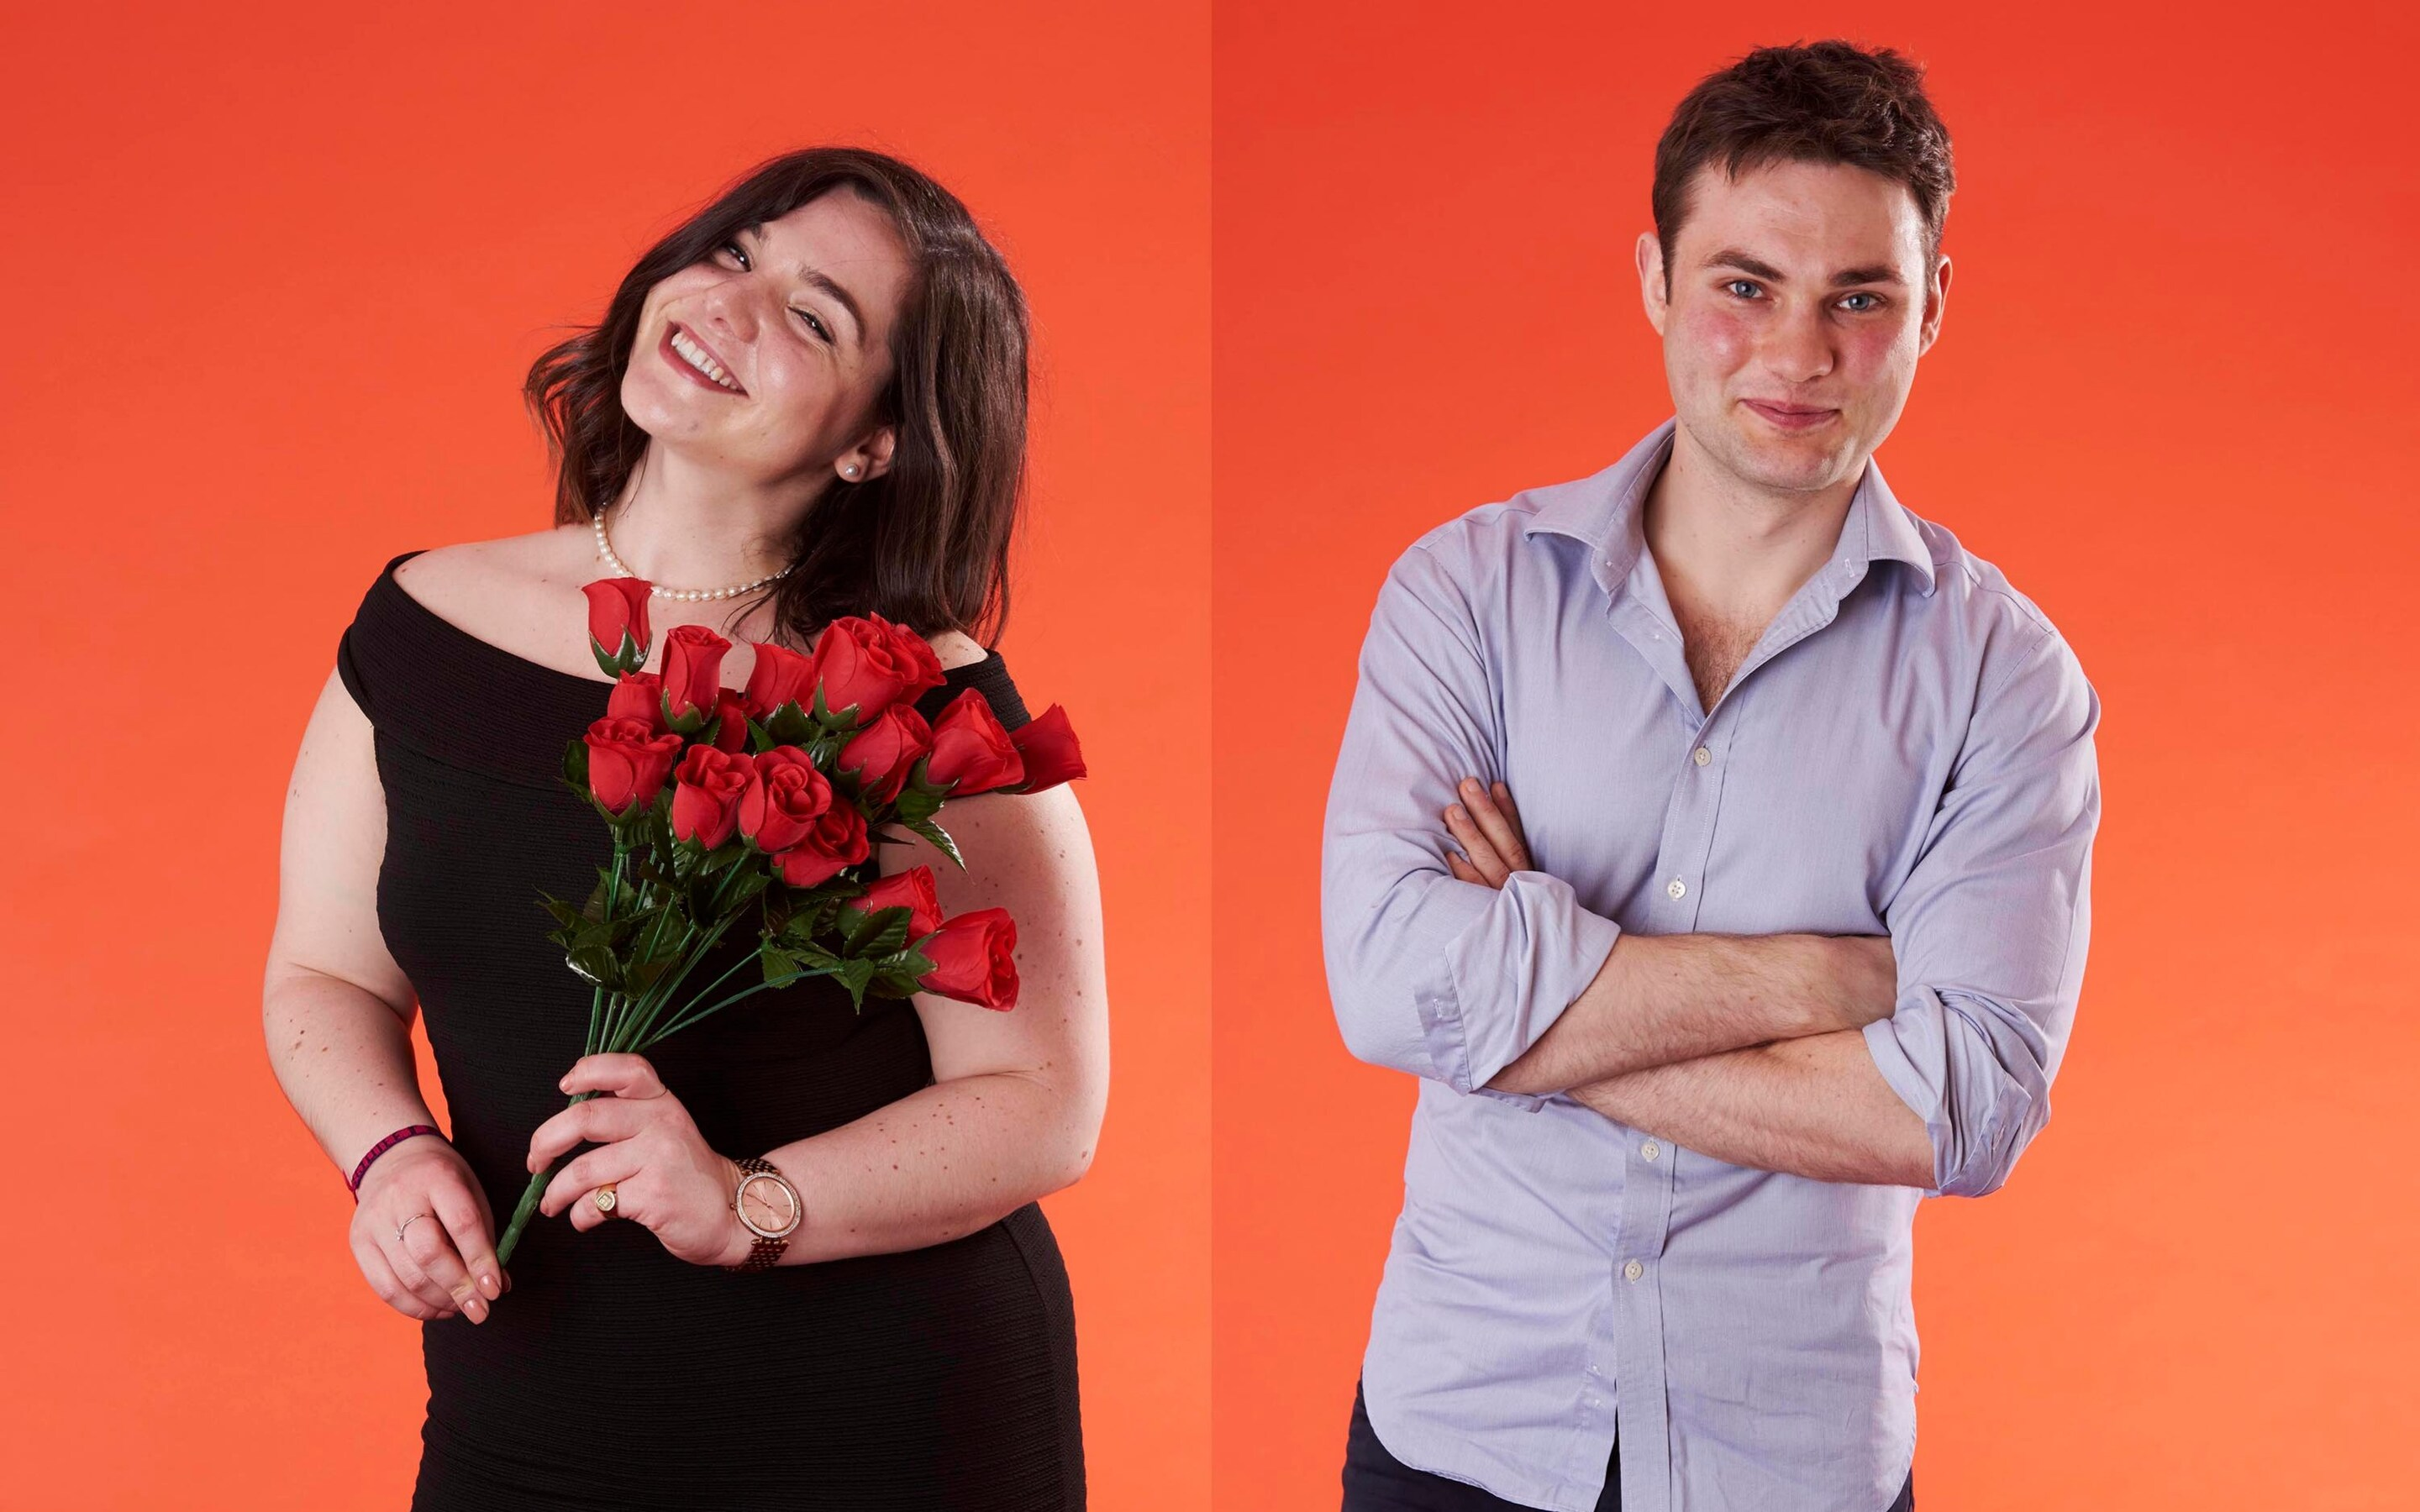 Best dating websites guardian. 7 of the most popular